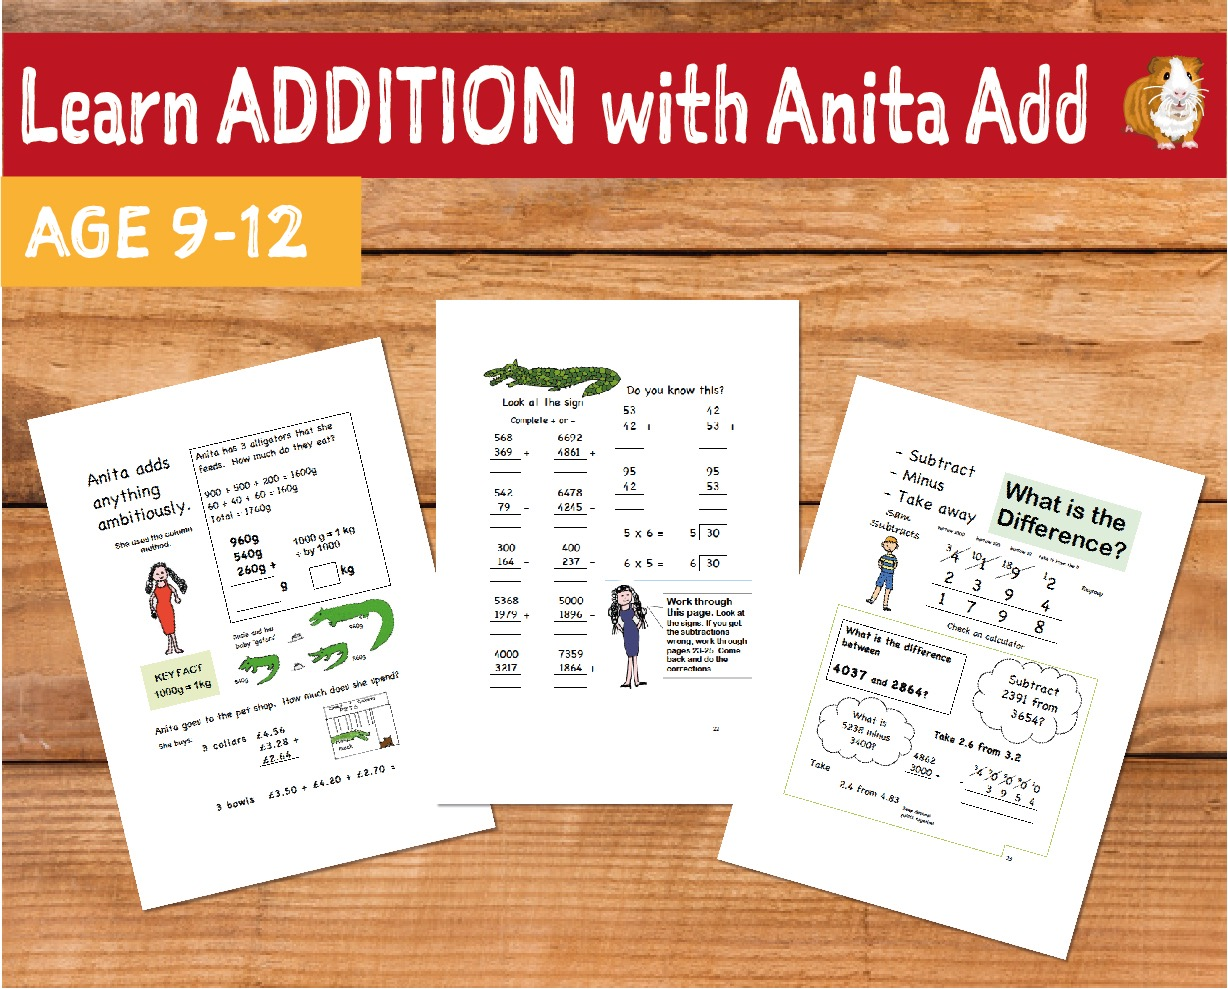 Learn Addition With Anita Add (9-12 years)